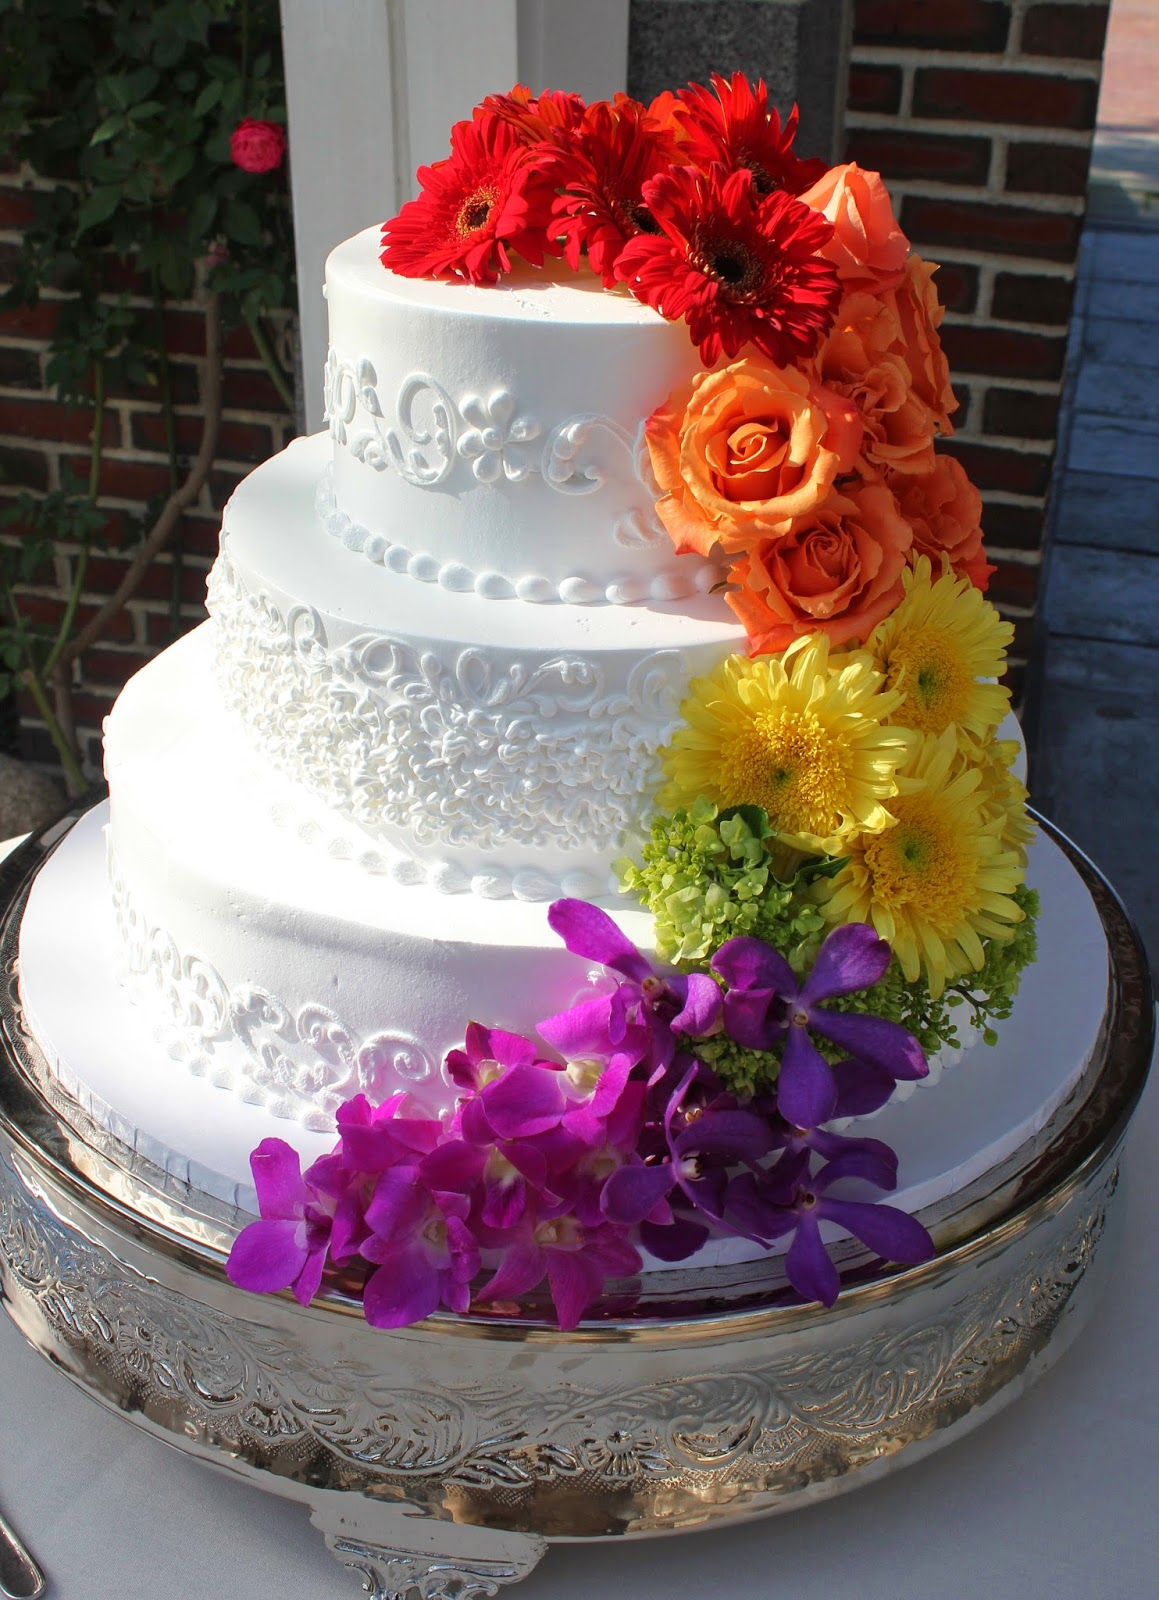 jeff french floral & event design: Rainbow Cake + Arrangements